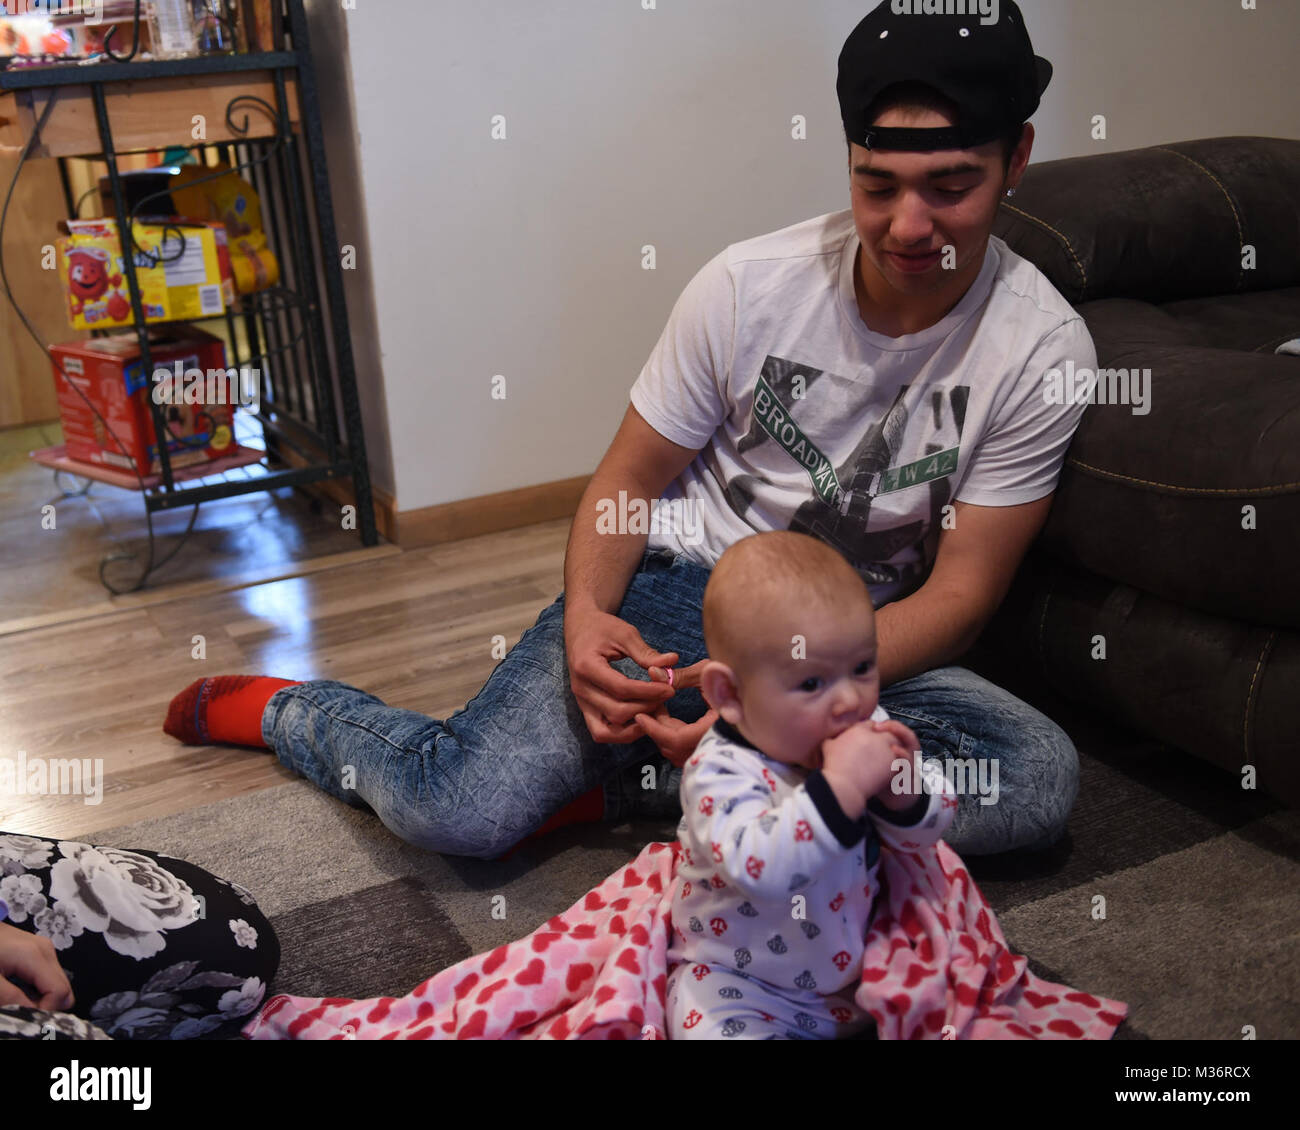 Tyger Rodriguez, 17, of Torrington, Wyoming, smiles at his six-month-old son Kyson, during his home visit from Wyoming - Stock Image